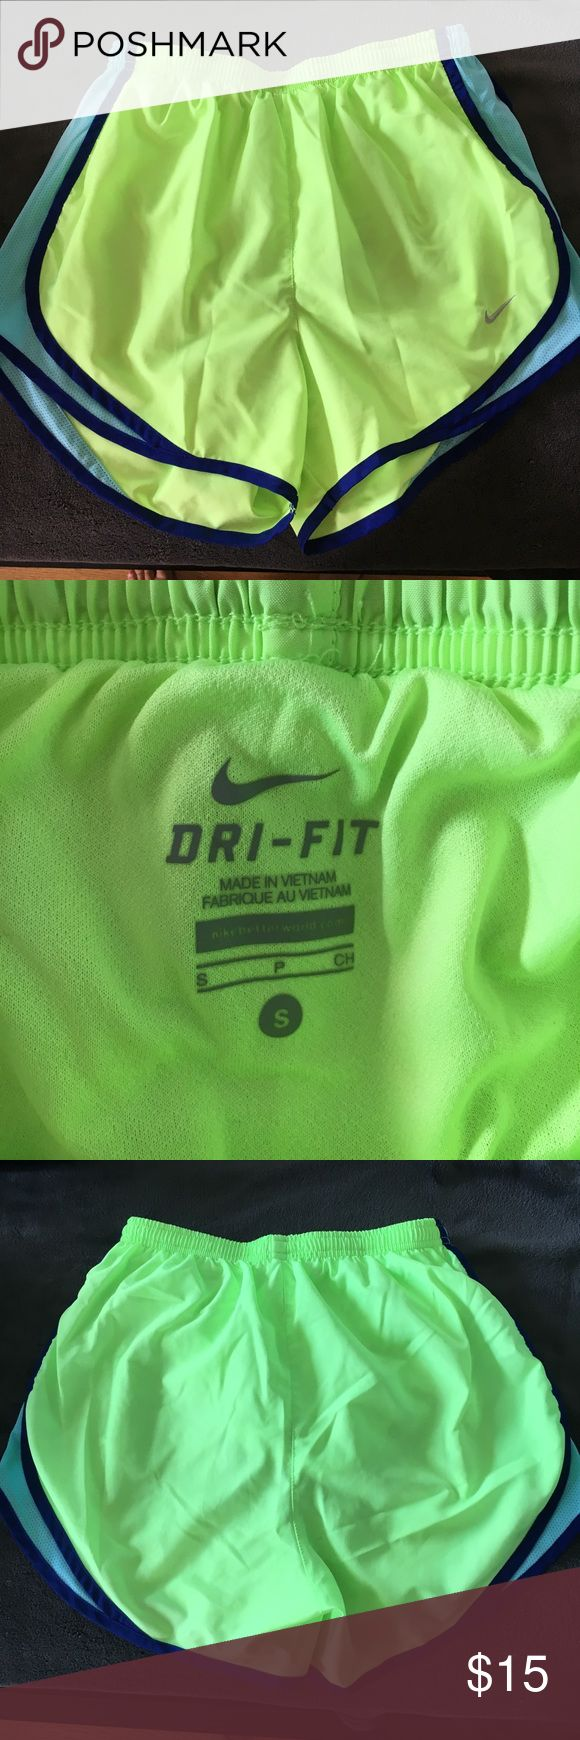 Neon green Nike dry fit shorts Barely worn! Neon green shorts with light blue and navy lining on the side. Lining on the inside and drawstring. Nike Shorts